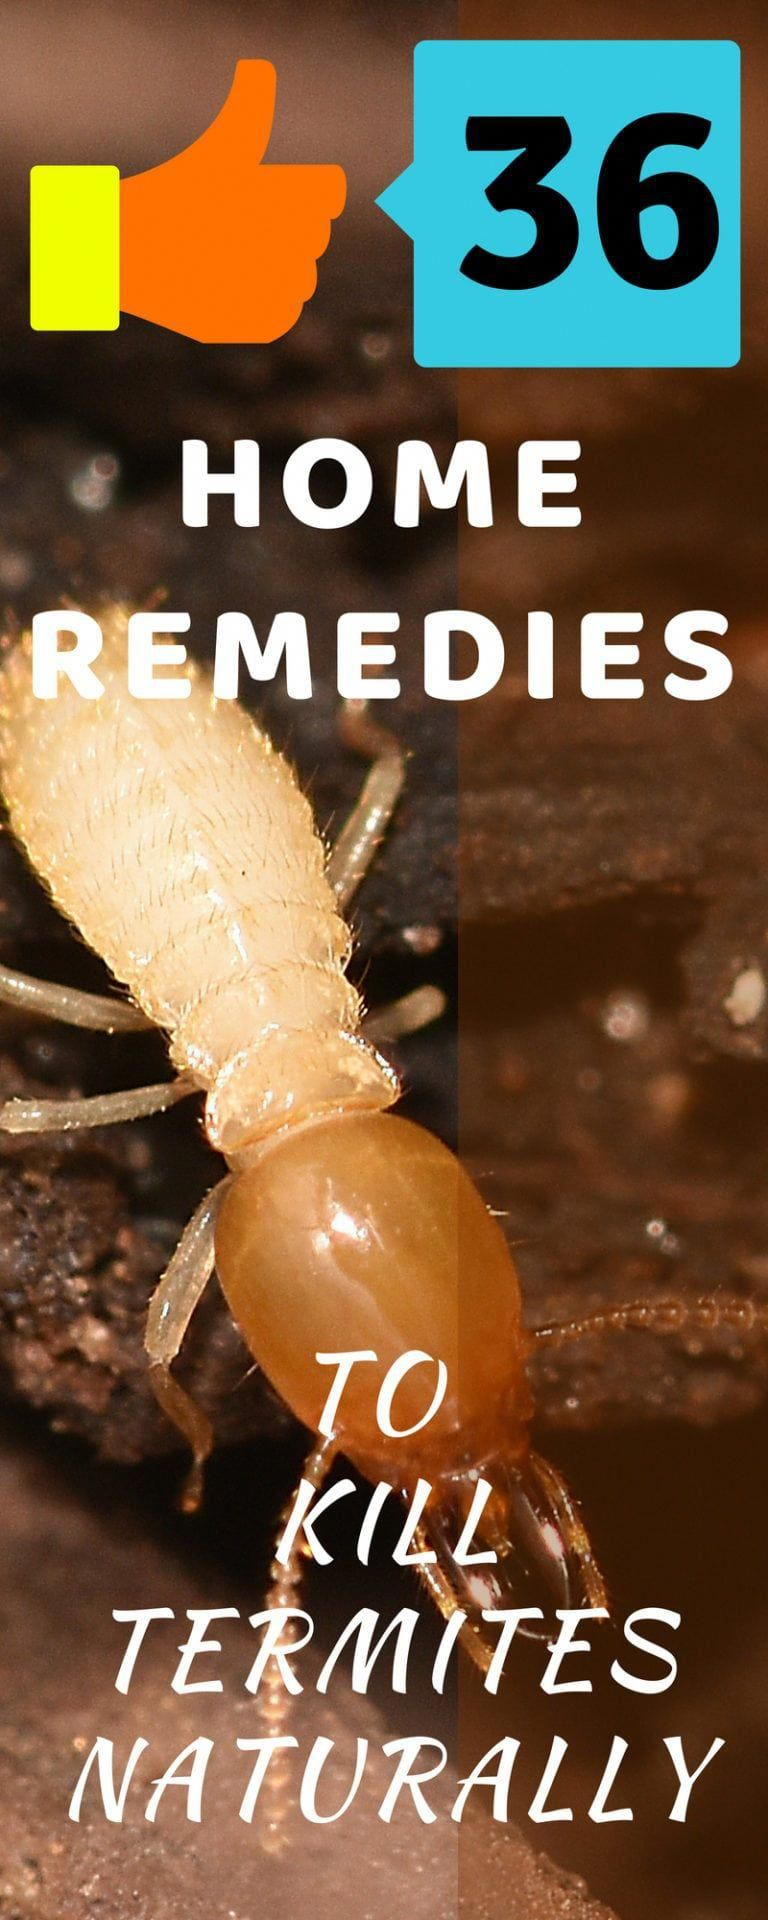 58af87236066d23250dd9dd2fcd931d1 - How To Get Rid Of Termites Permanently At Home